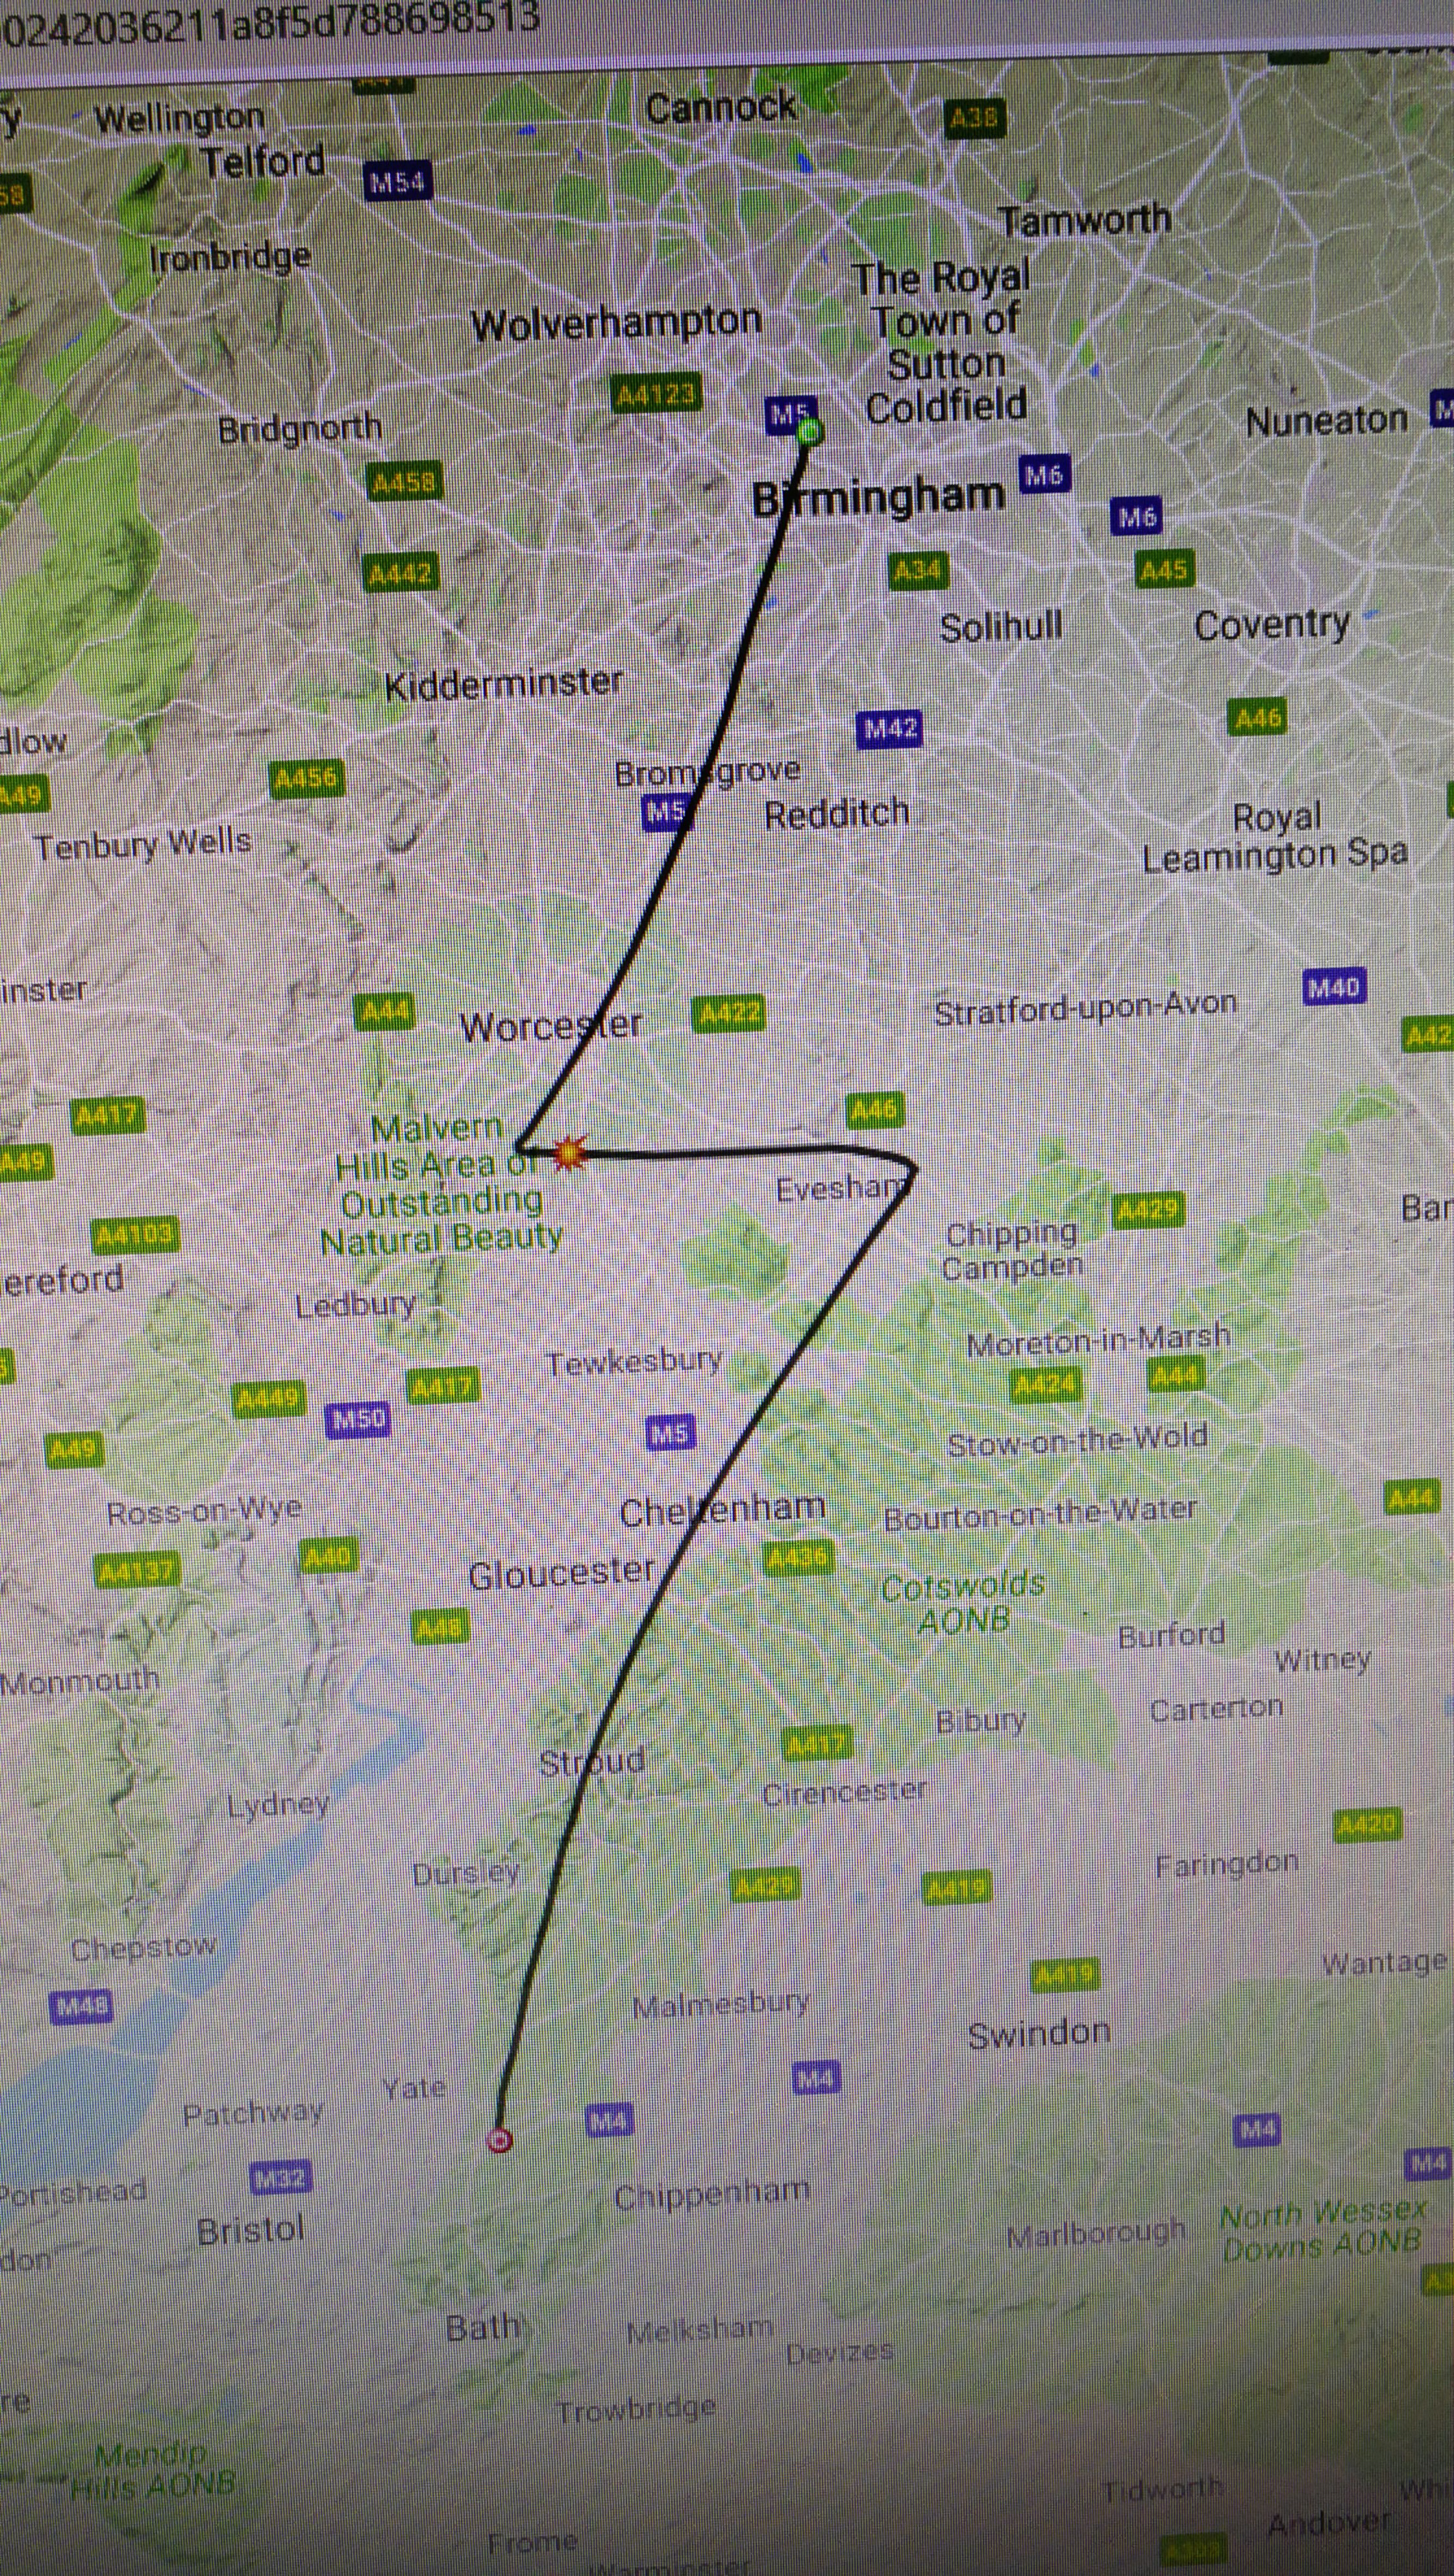 Route followed by the helium balloon after take-off near Bath to recovery 100 miles away near Birmingham